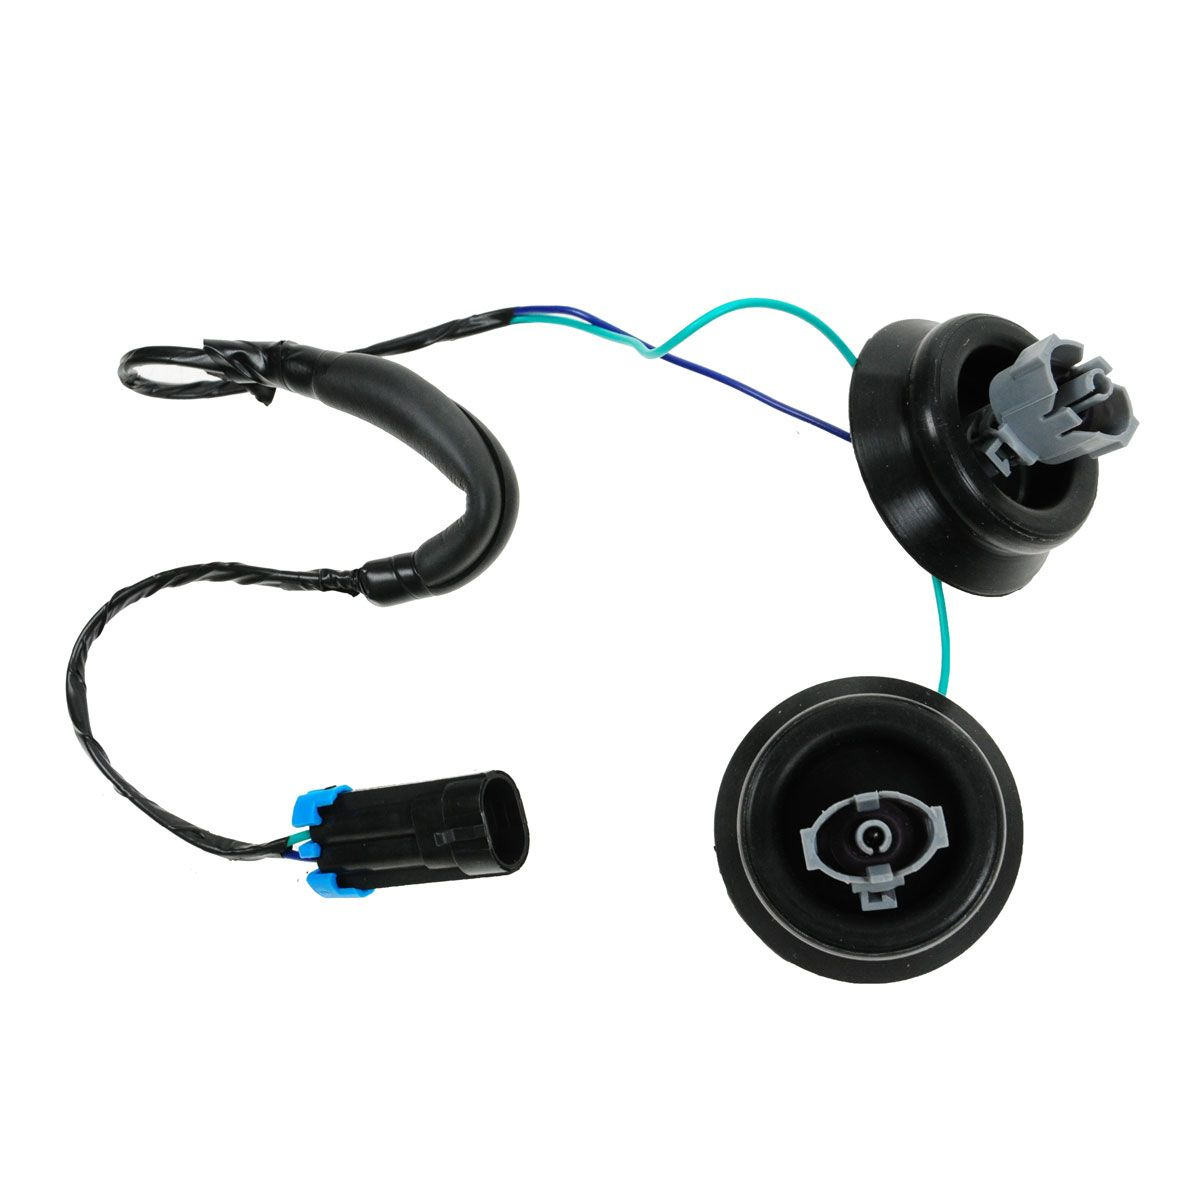 Engine Knock Sensor Harness with Dual Connectors Grommets for Cadillac Chevy GMC